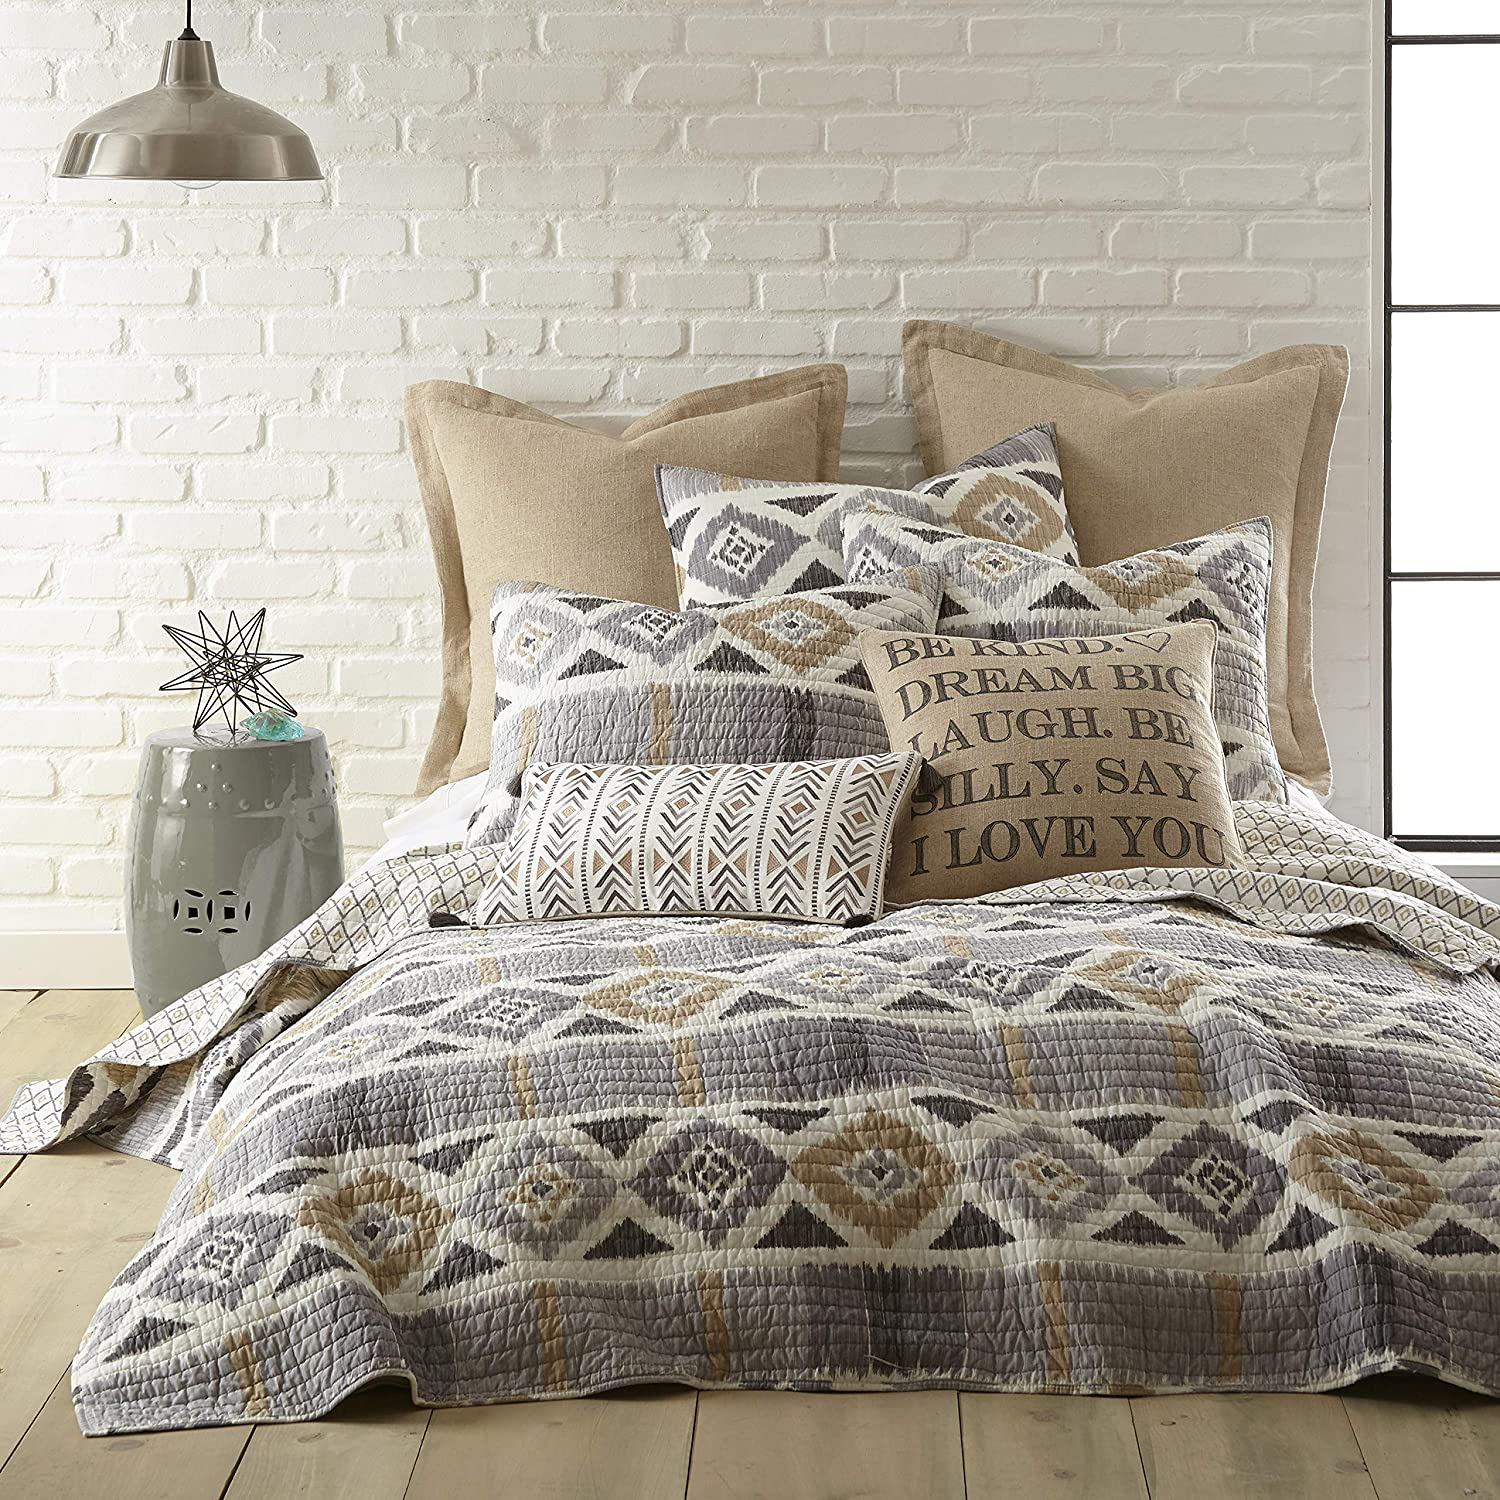 Levtex Home - Santa Fe Quilt - Ikat Pattern in Soft Grey, Cream and Tan - King Quilt Size (106 x 92in.) - Reversible Pattern - Cotton - Shams Sold Separately